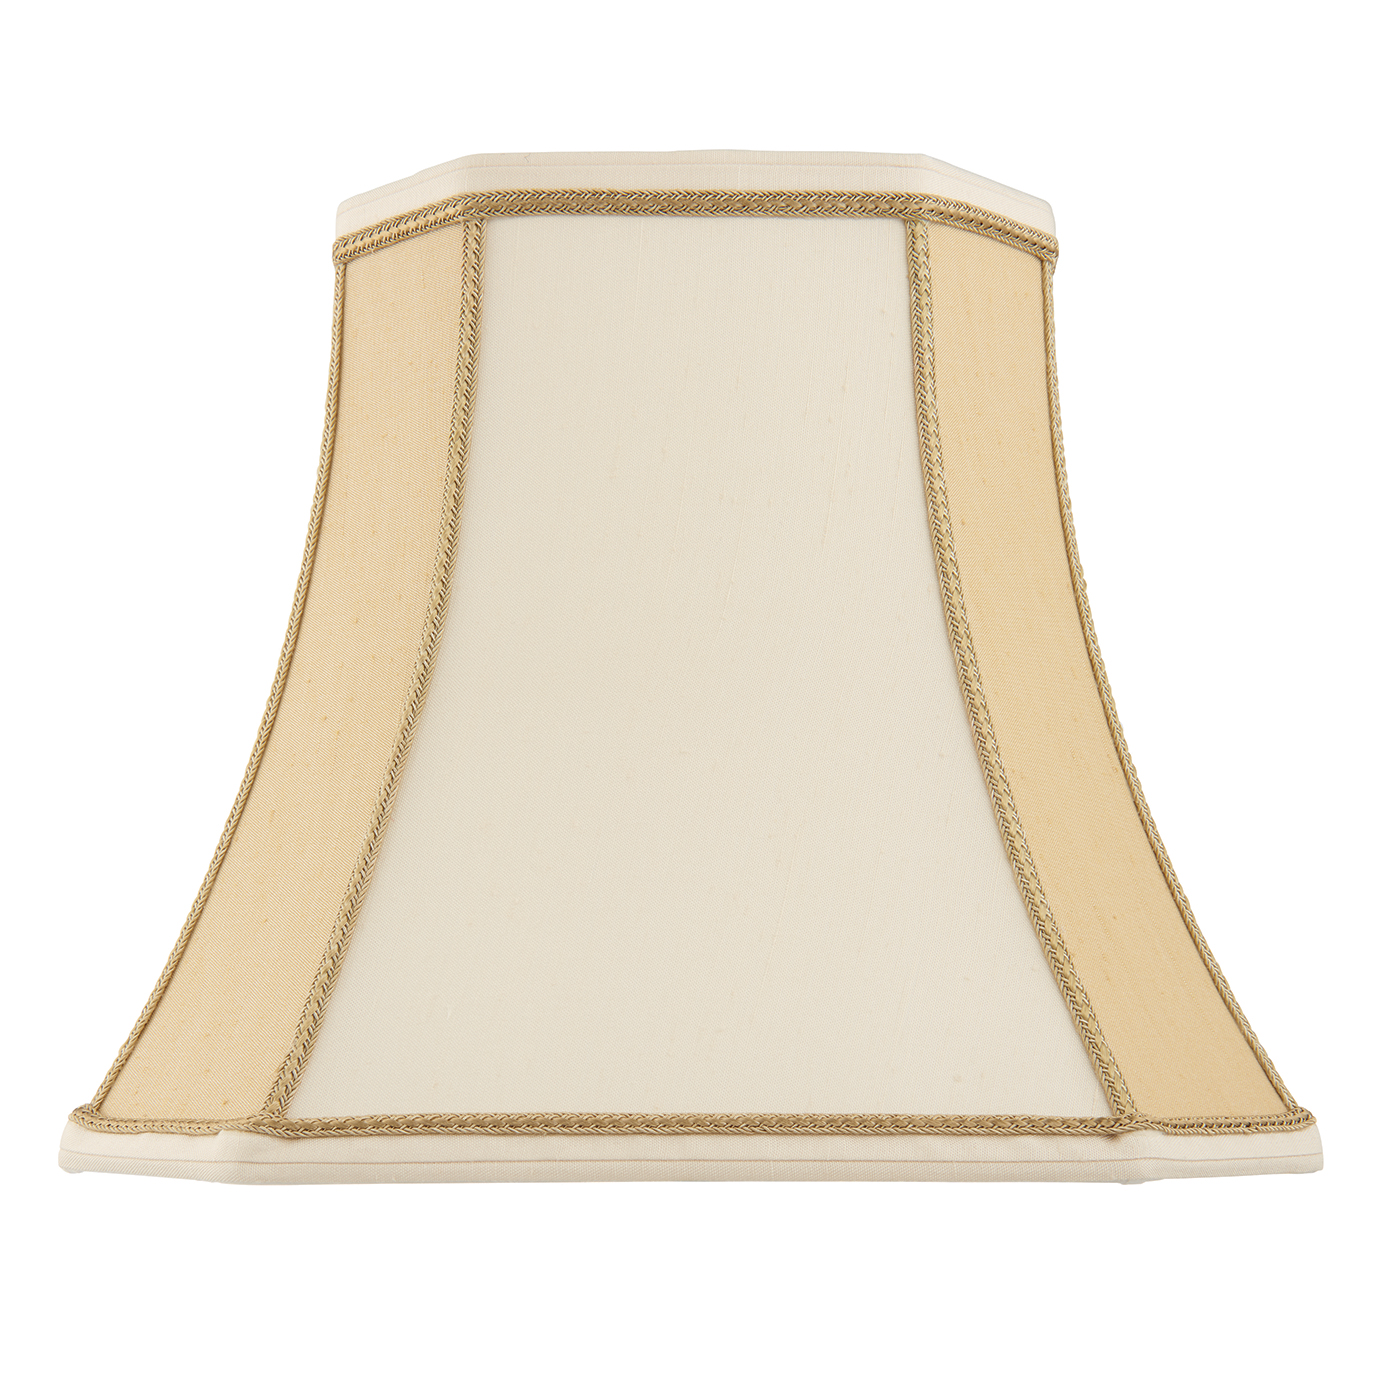 Endon Camilla lampshade 16 inch Two-tone cream faux silk 315mm H x 410mm D max.